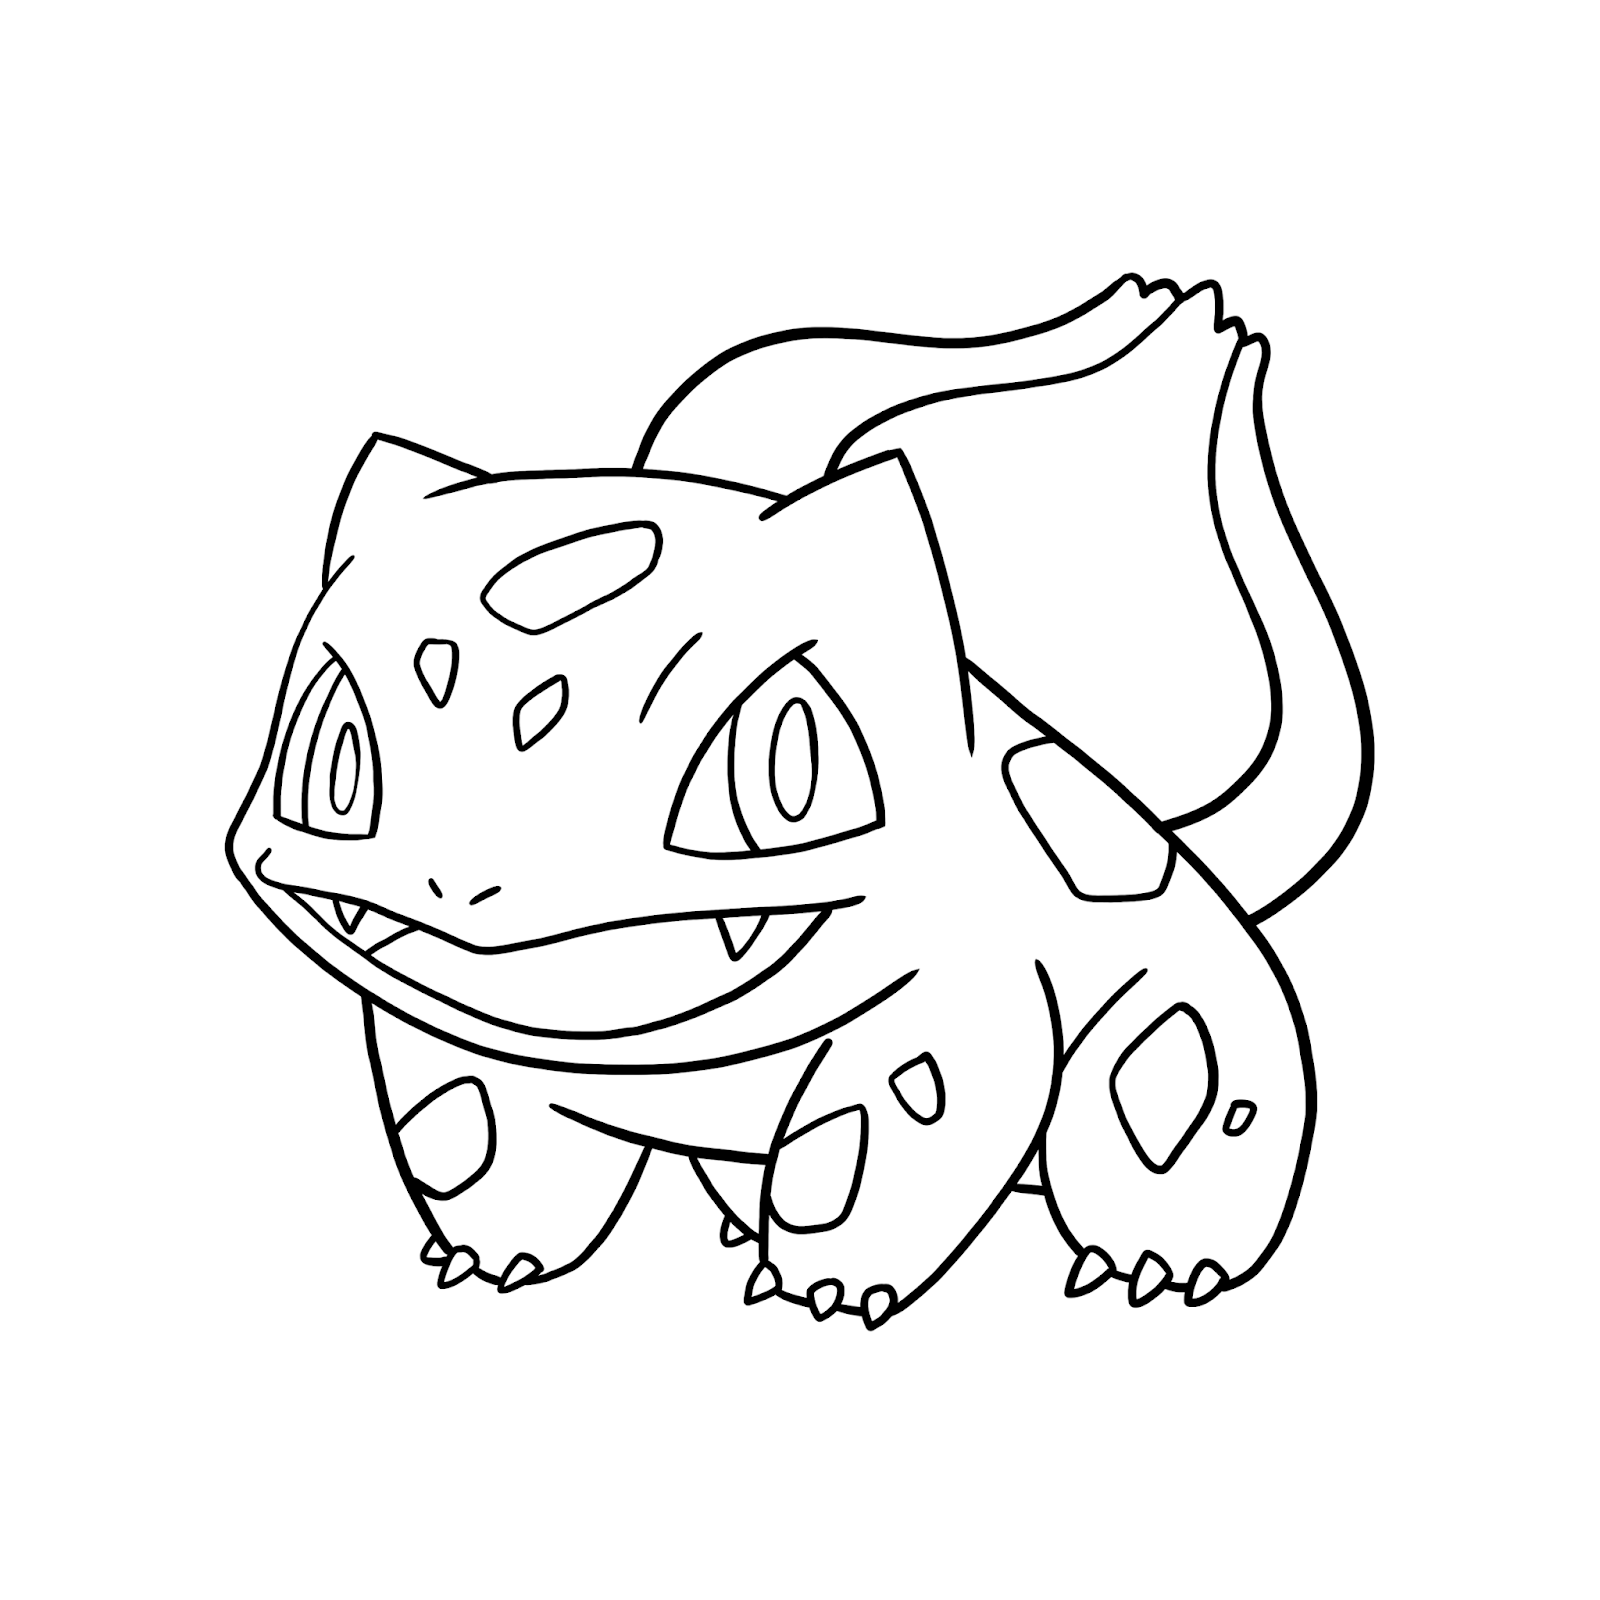 coloring pokemon pokemon coloring pages join your favorite pokemon on an pokemon coloring